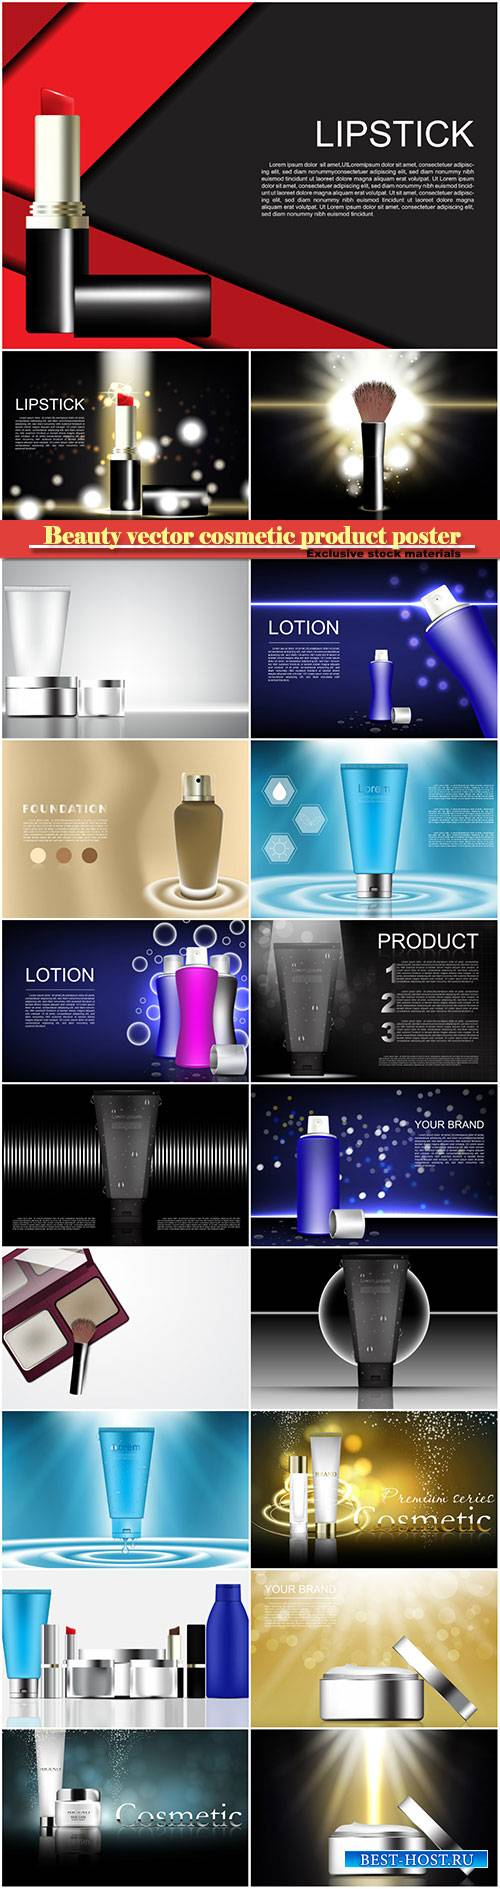 Beauty vector cosmetic product poster #3